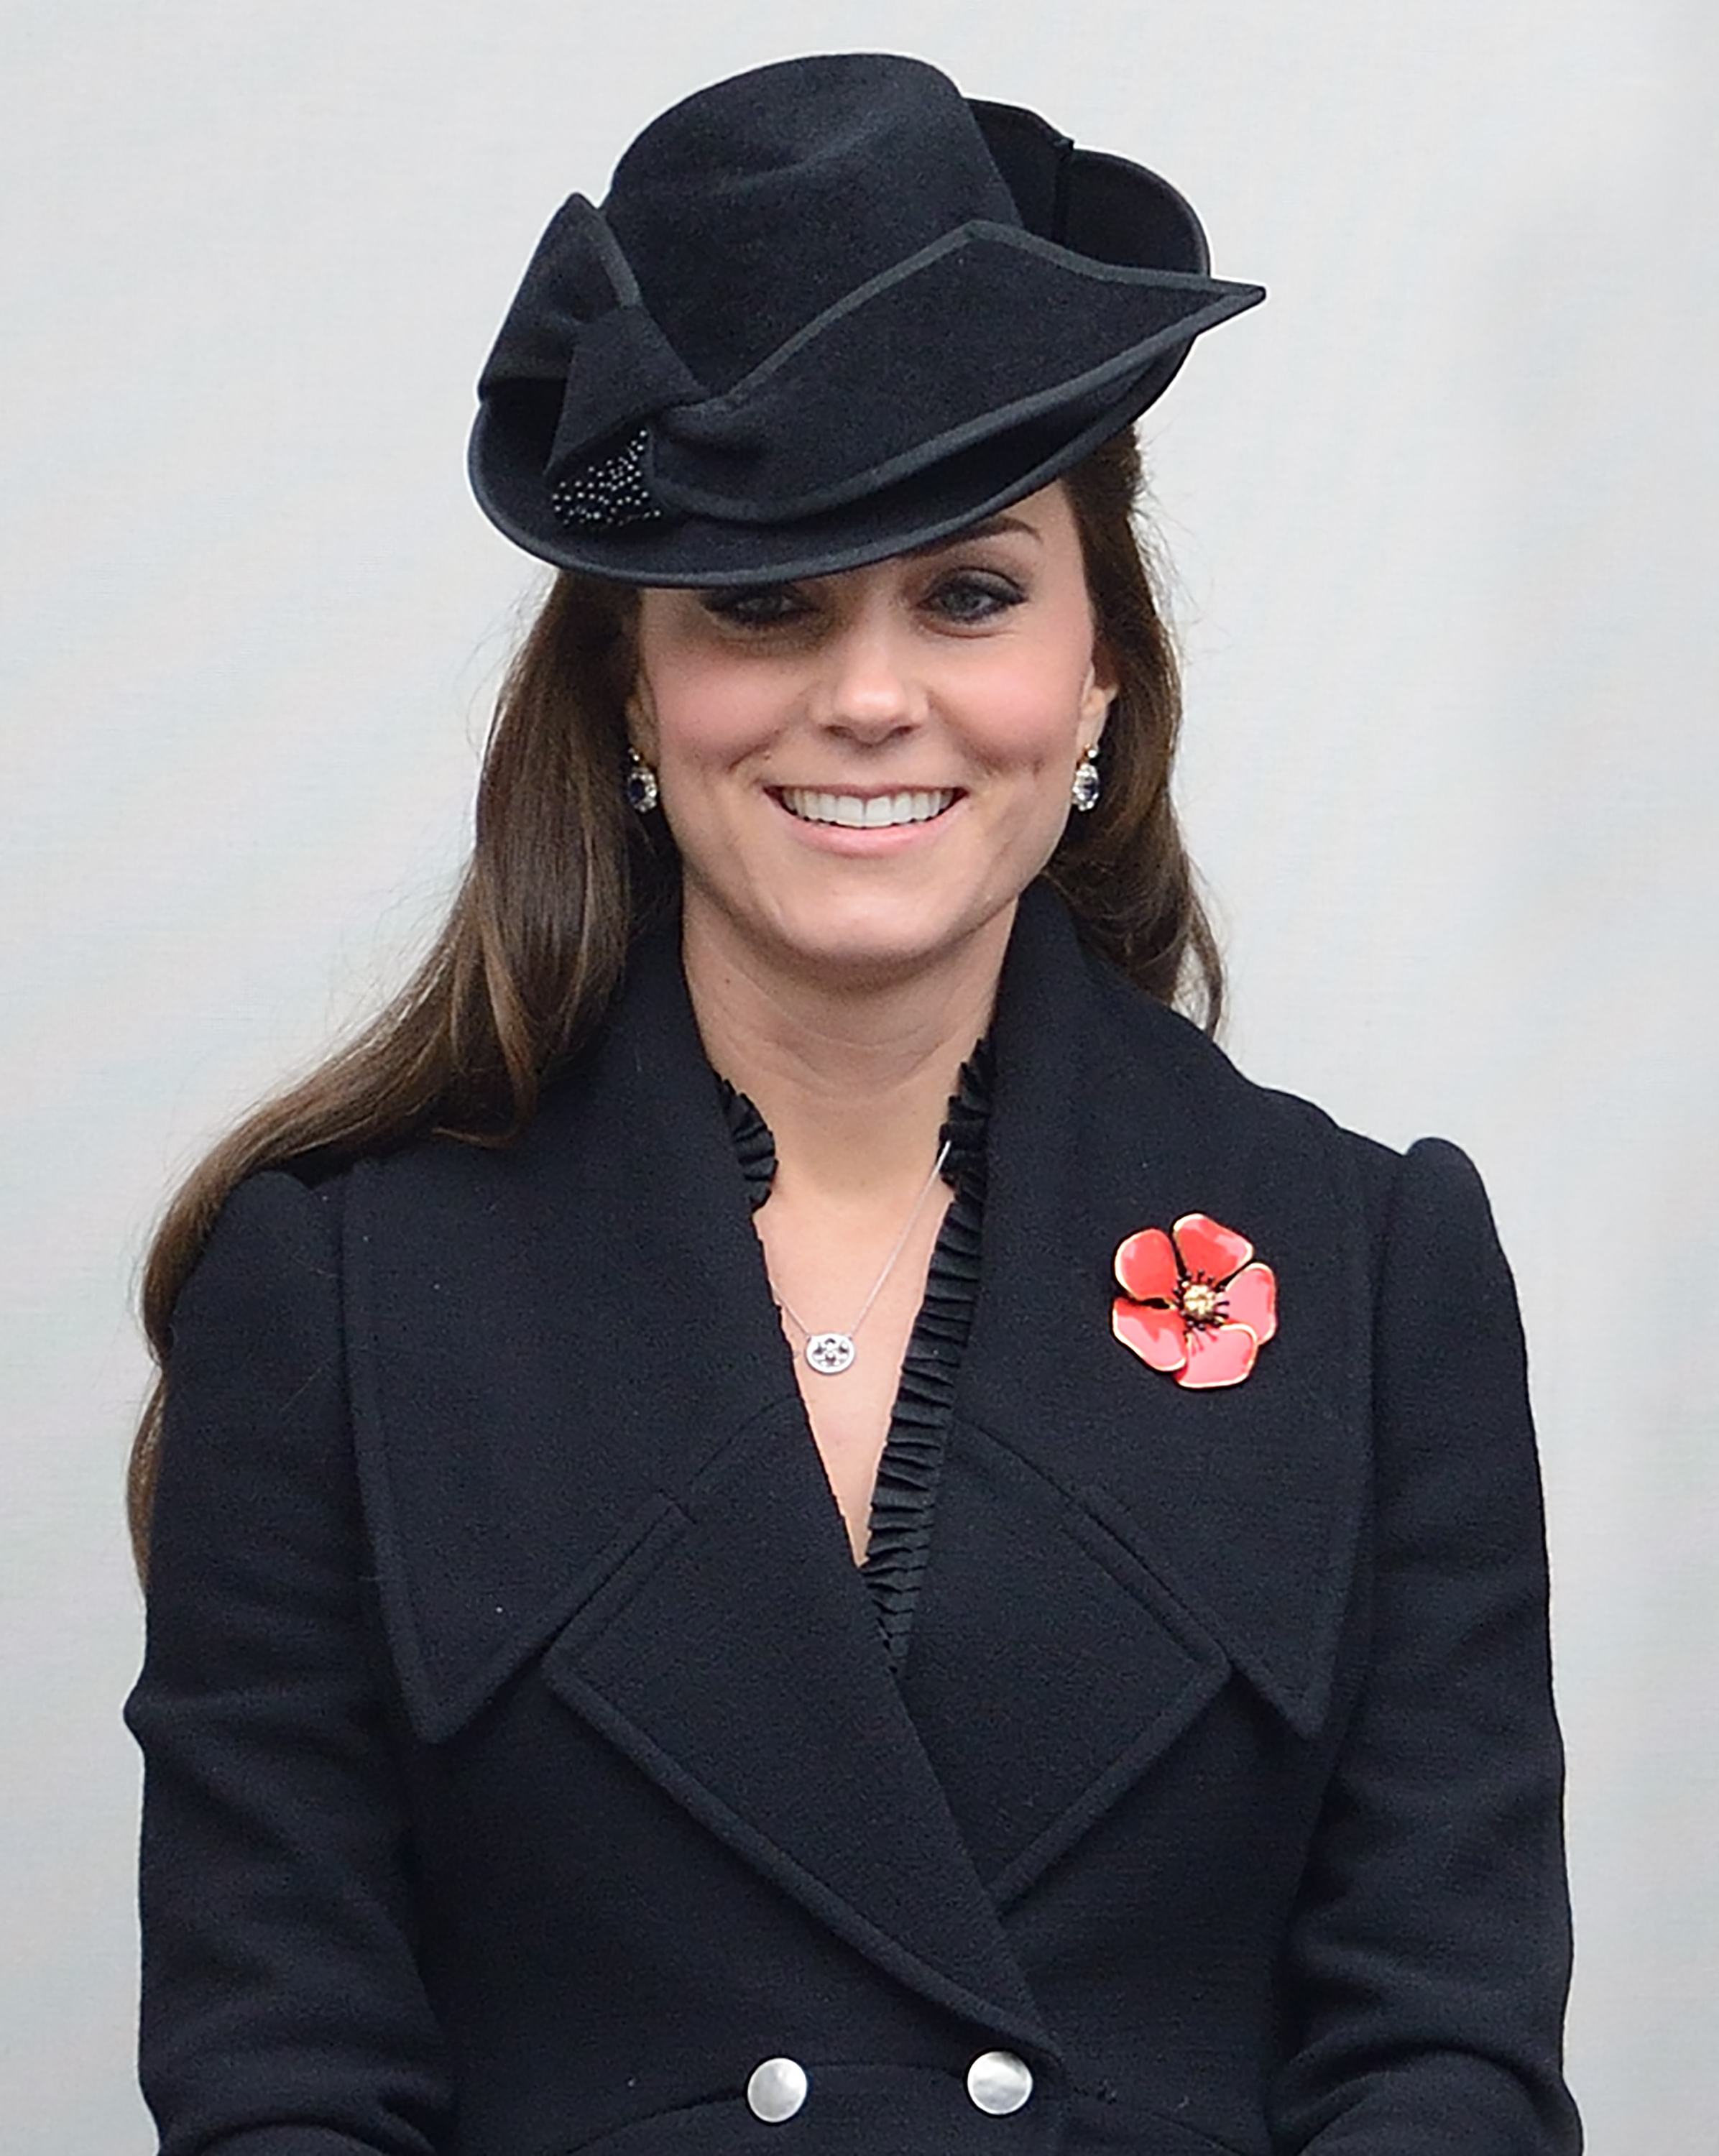 Catherine, Duchess of Cambridge attends The Remembrance Sunday Service at The Cenotaph, London on Nov. 9, 2014.